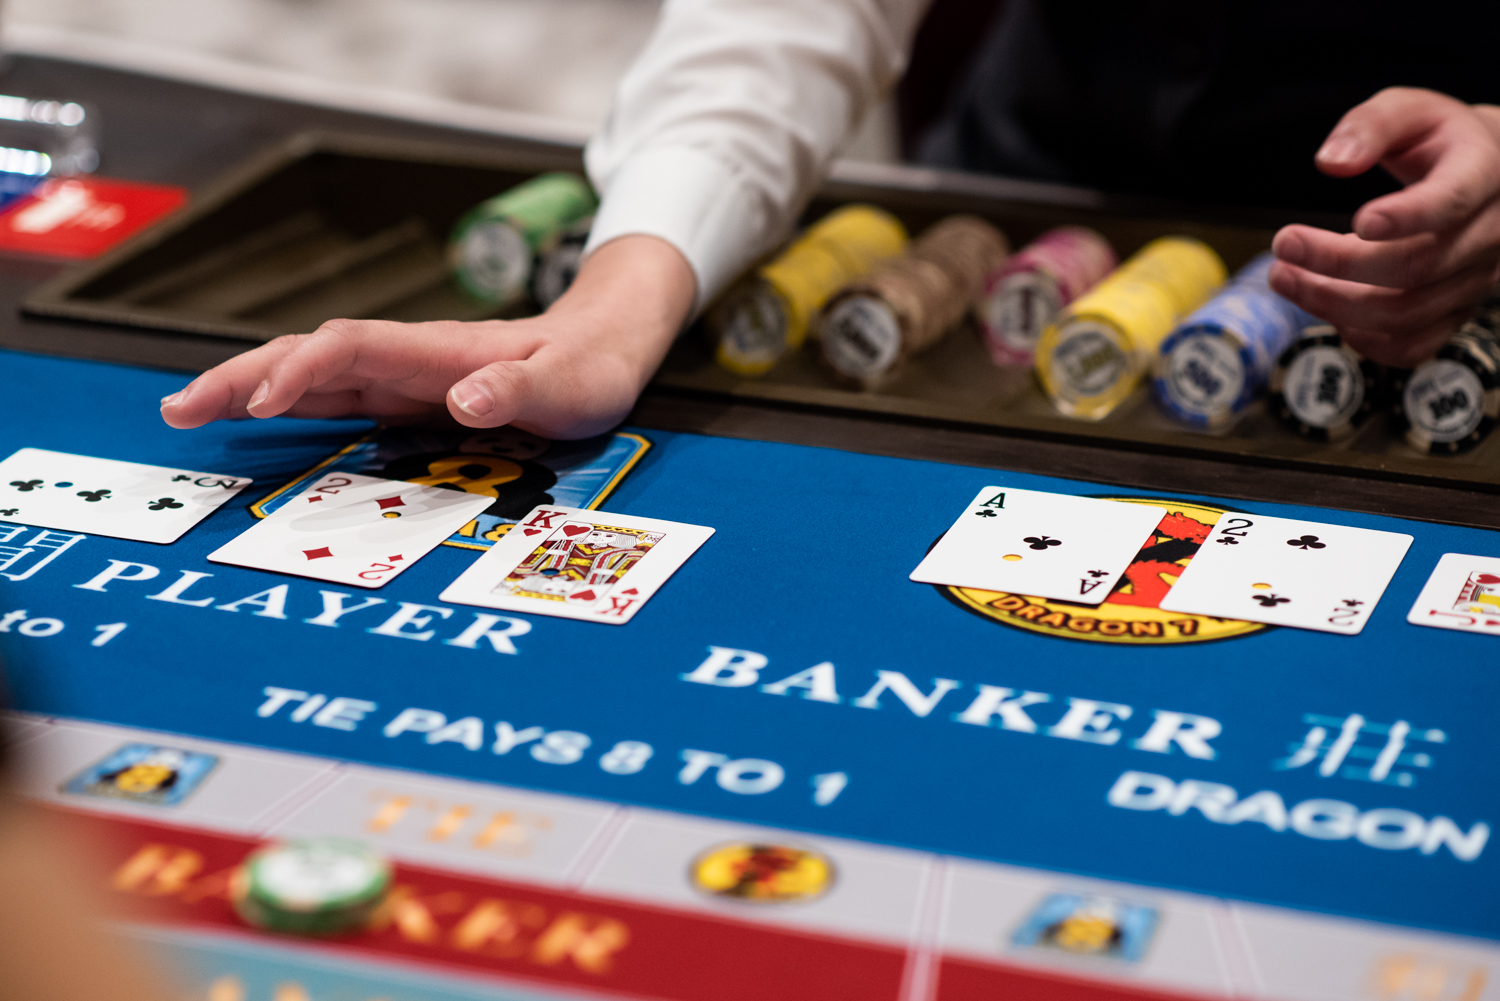 Play Baccarat – An Easy, Fun Game, With Higher Odds